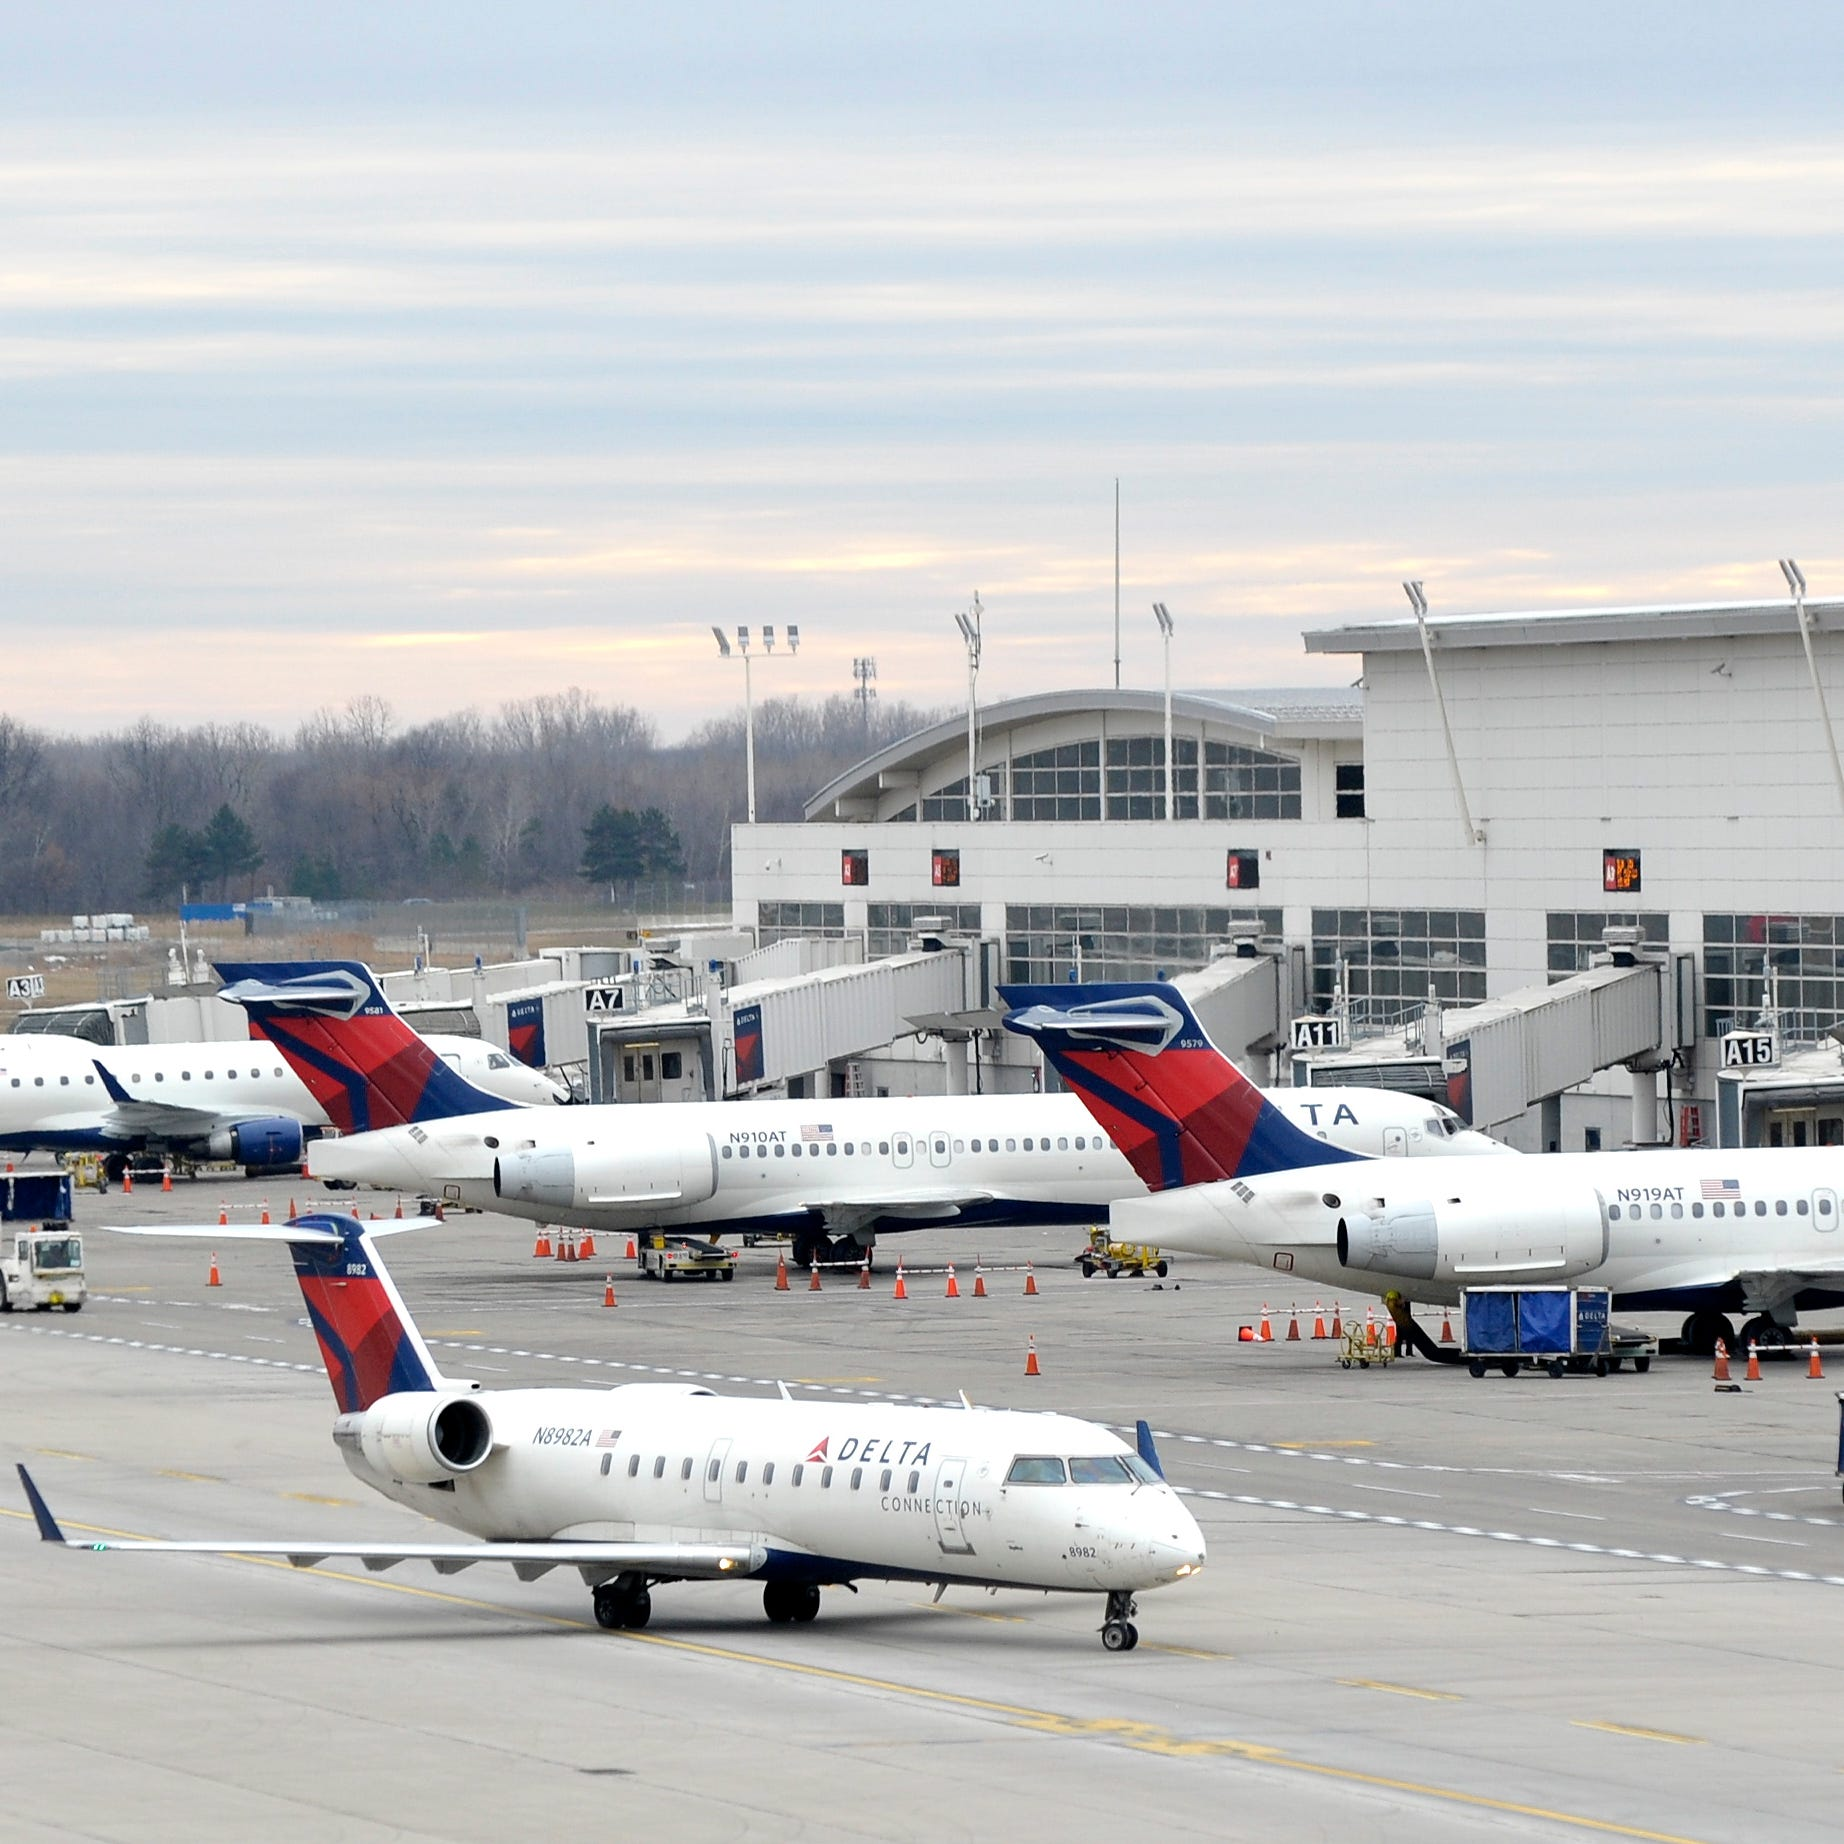 The icy mix that hit evening commuters Tuesday caused Detroit Metro Airport to close, at 8 p.m., according to a post by the Federal Aviation Administration